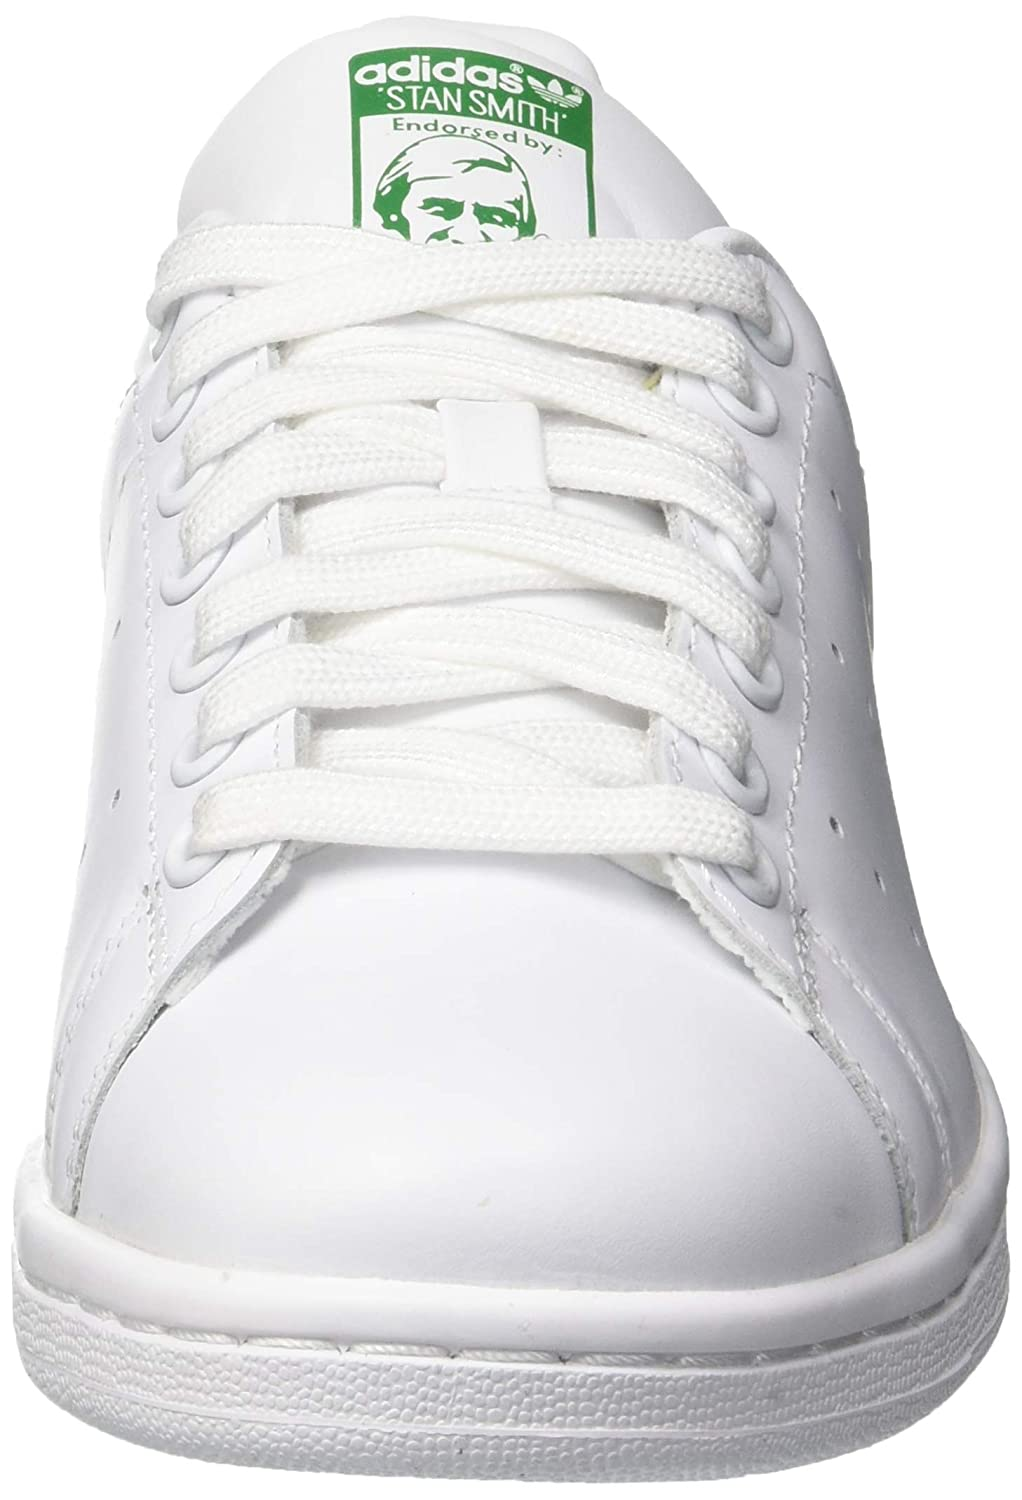 best service 9ed73 173a8 Amazon.com  adidas Unisex Adults Stan Smith 325 Trainers  Fashion  Sneakers